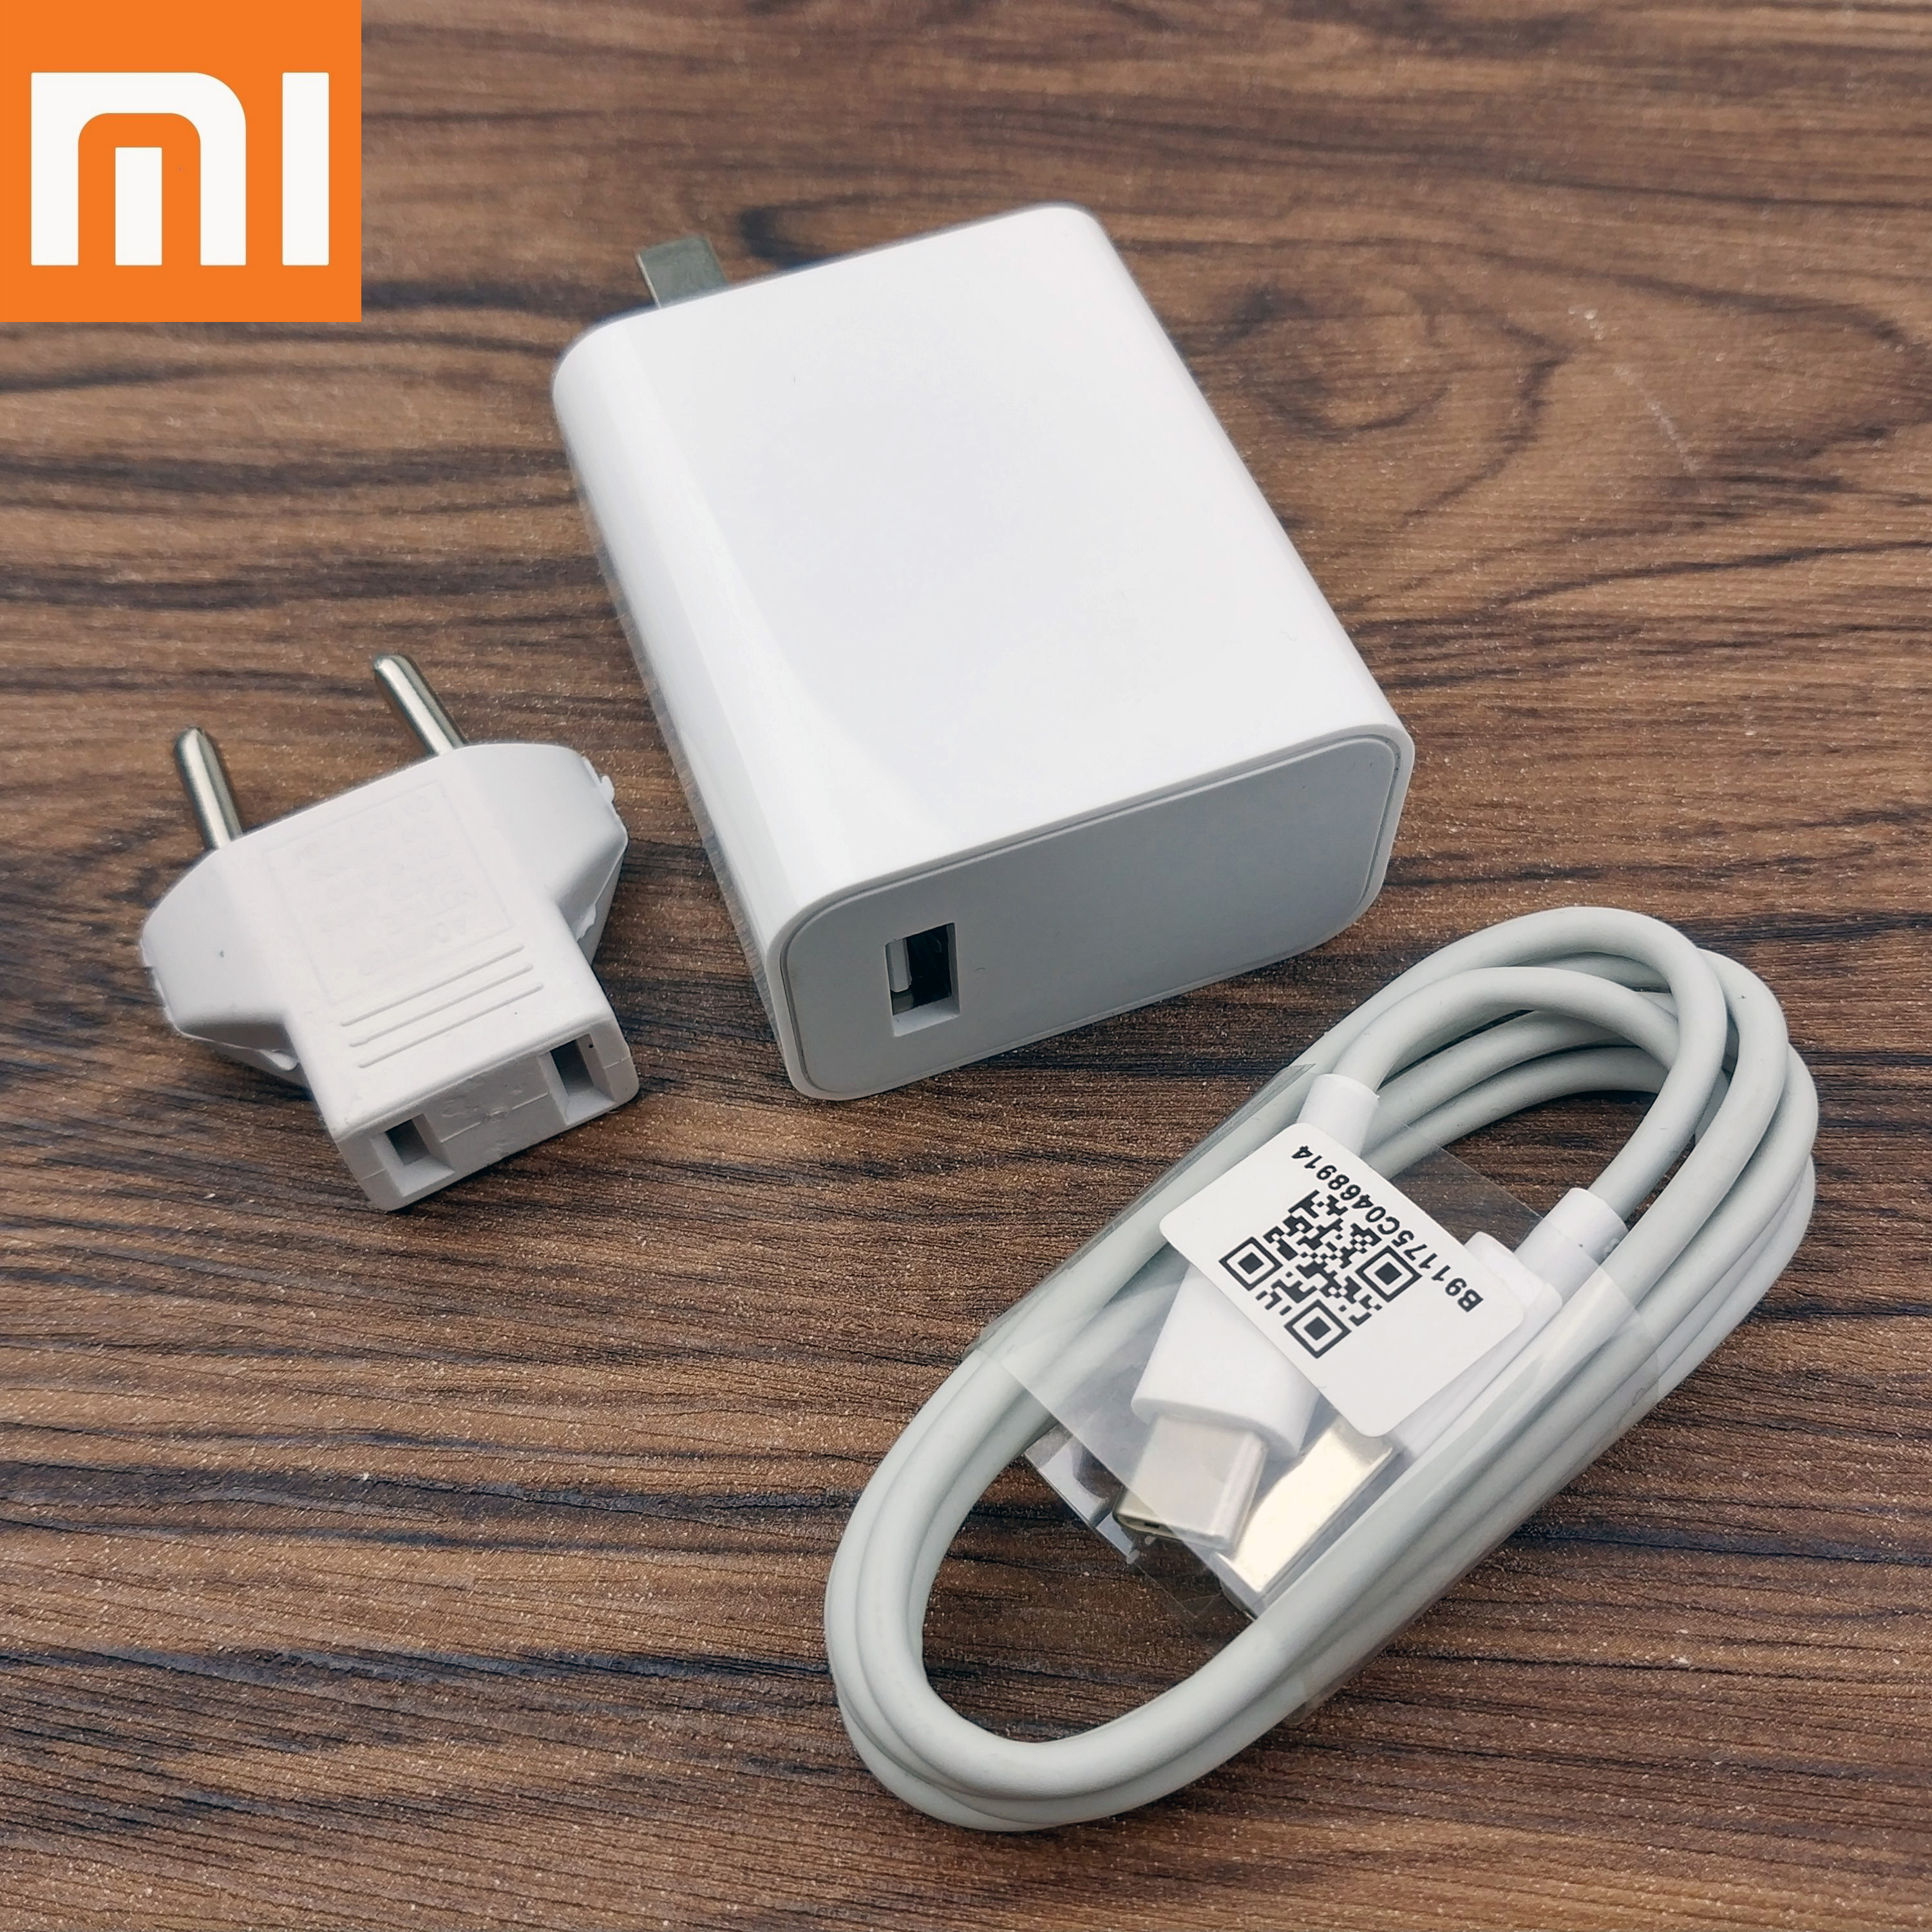 Mobile Phone Accessories Mobile Phone Chargers Original Xiaomi Mi 9 Fast Charger Qc 4.0 27w Usb Wall Quick Charge Adapter Usb 3.1 Data Cable For Mi9 Se Mi 8 7 F1 Mix 2 2s 3